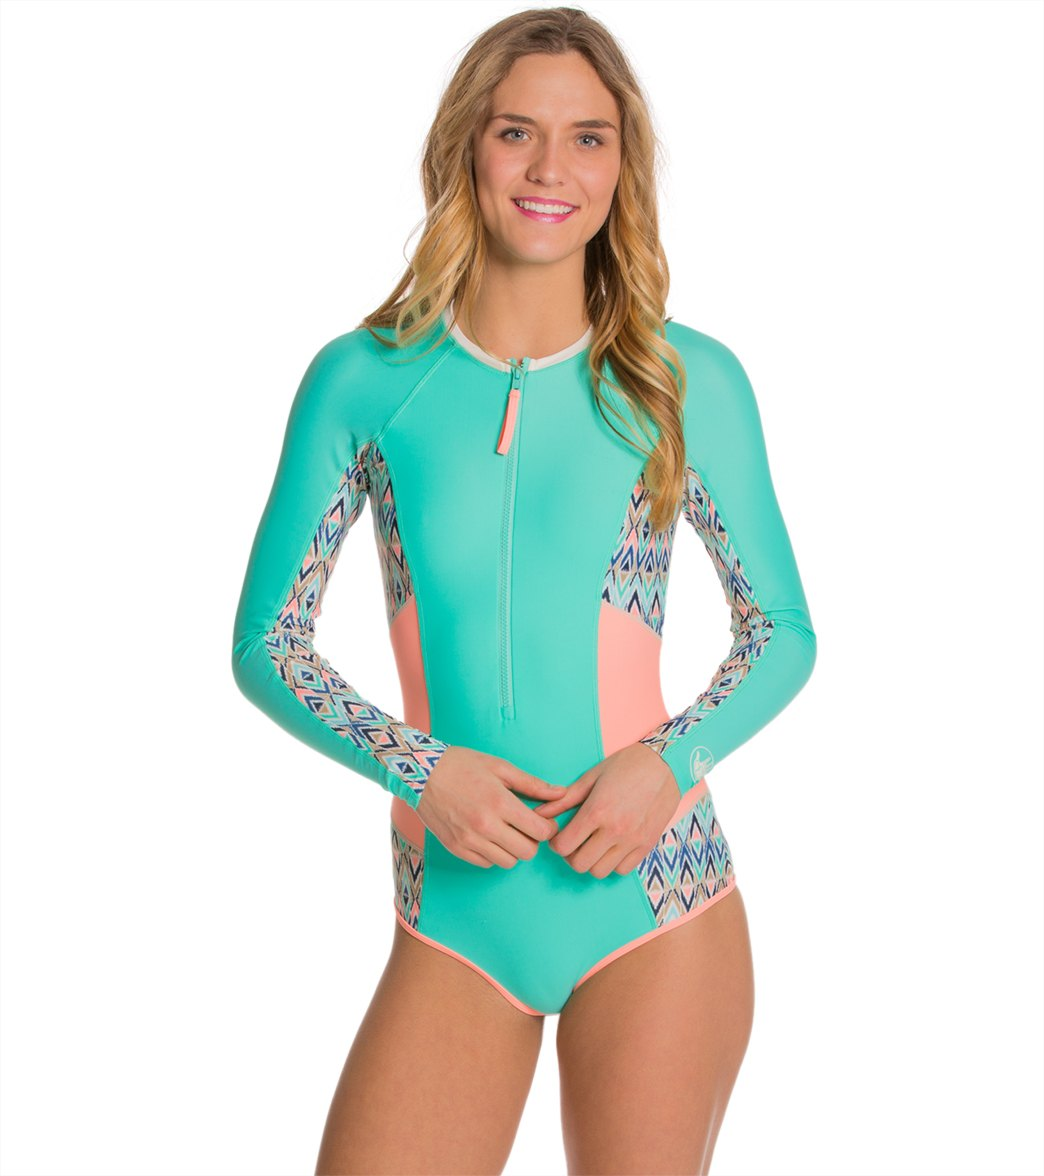 bf42f45ab0 Body Glove Breathe Tarahiki L S Paddle Suit at SwimOutlet.com - Free ...